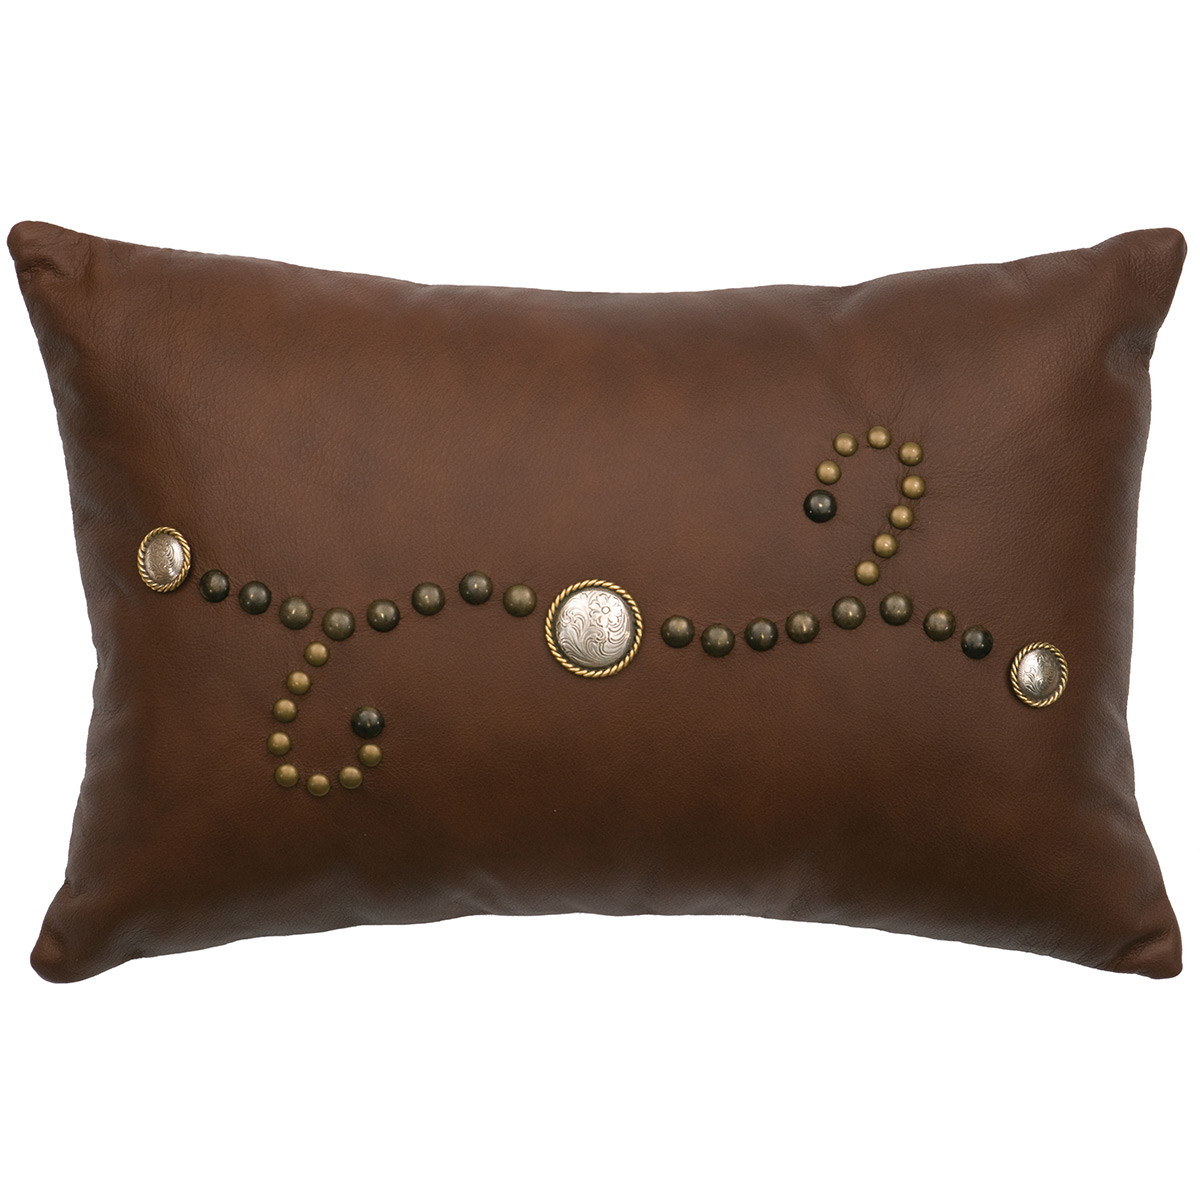 Sierra Brown Leather Pillow with Fabric Back